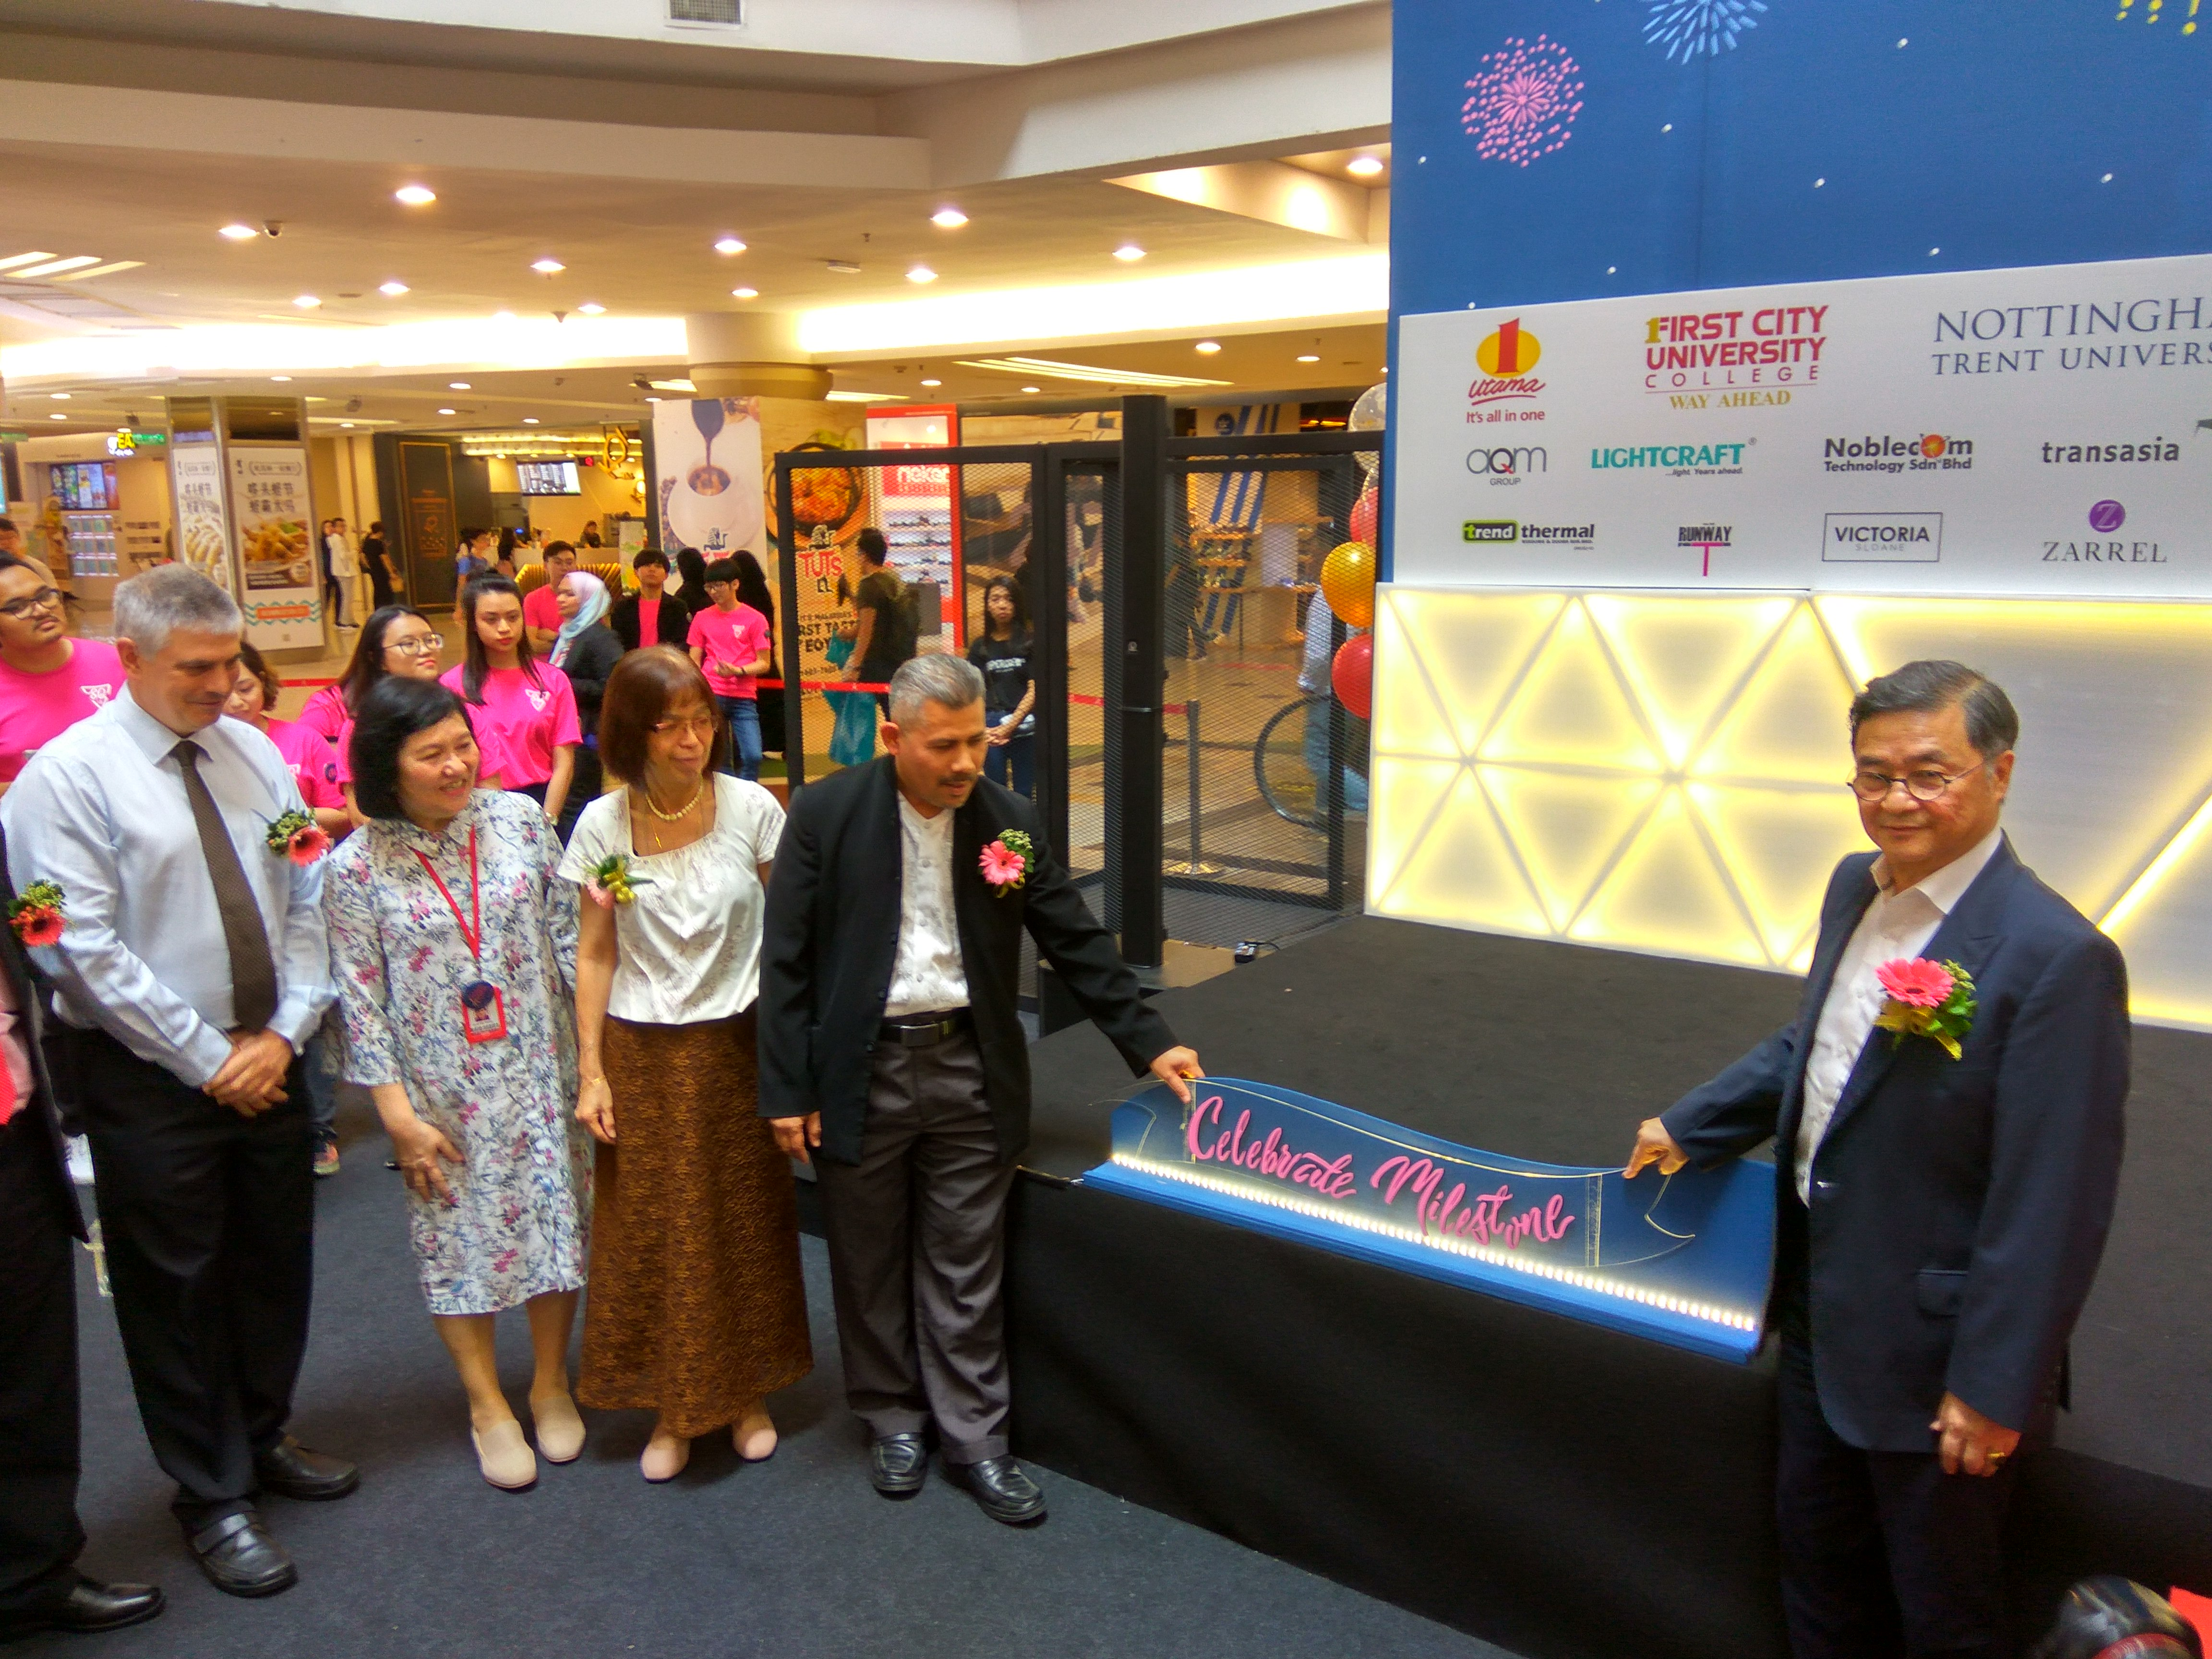 coursesmalaysia-news-firstcity-sequence-02-2018